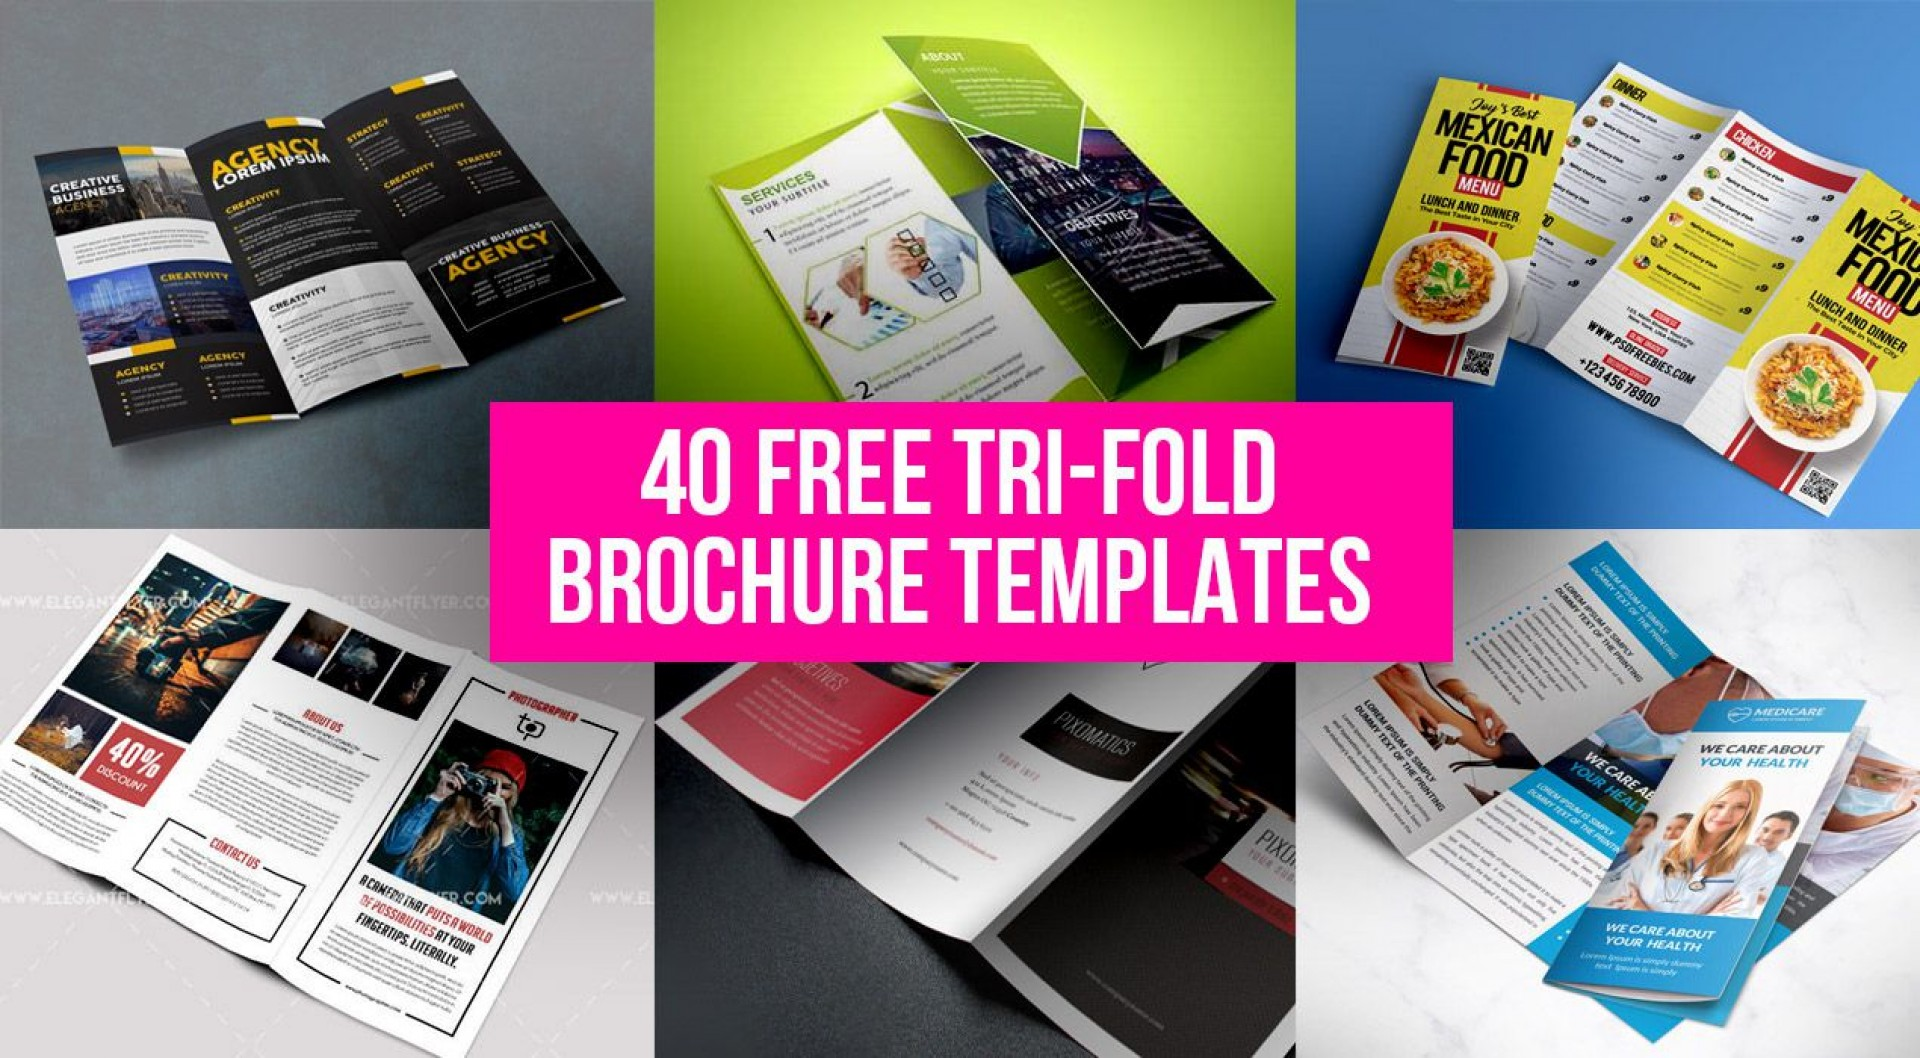 000 Beautiful Free Tri Fold Brochure Template Inspiration  Microsoft Word 2010 Download Ai Downloadable For1920